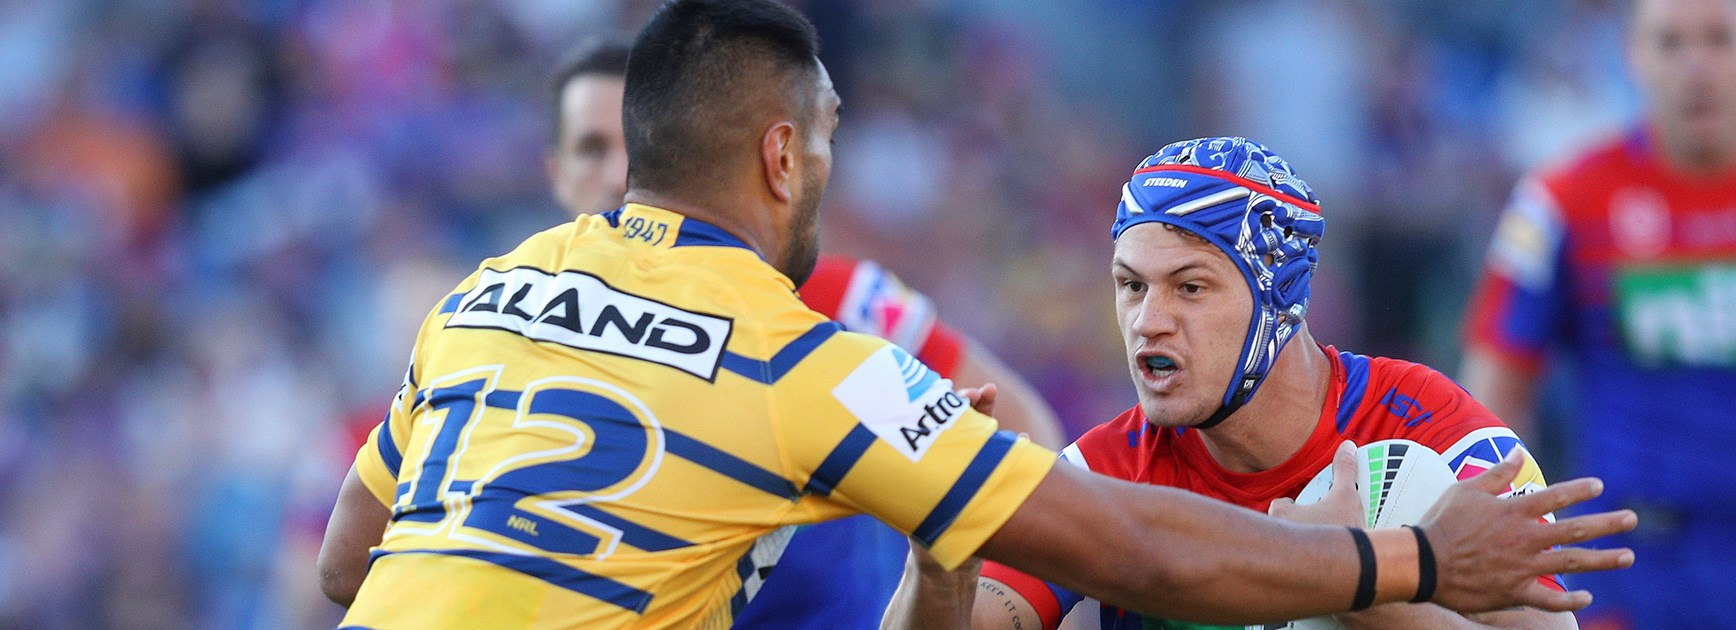 Knights rebound from week of soul-searching to upset Eels